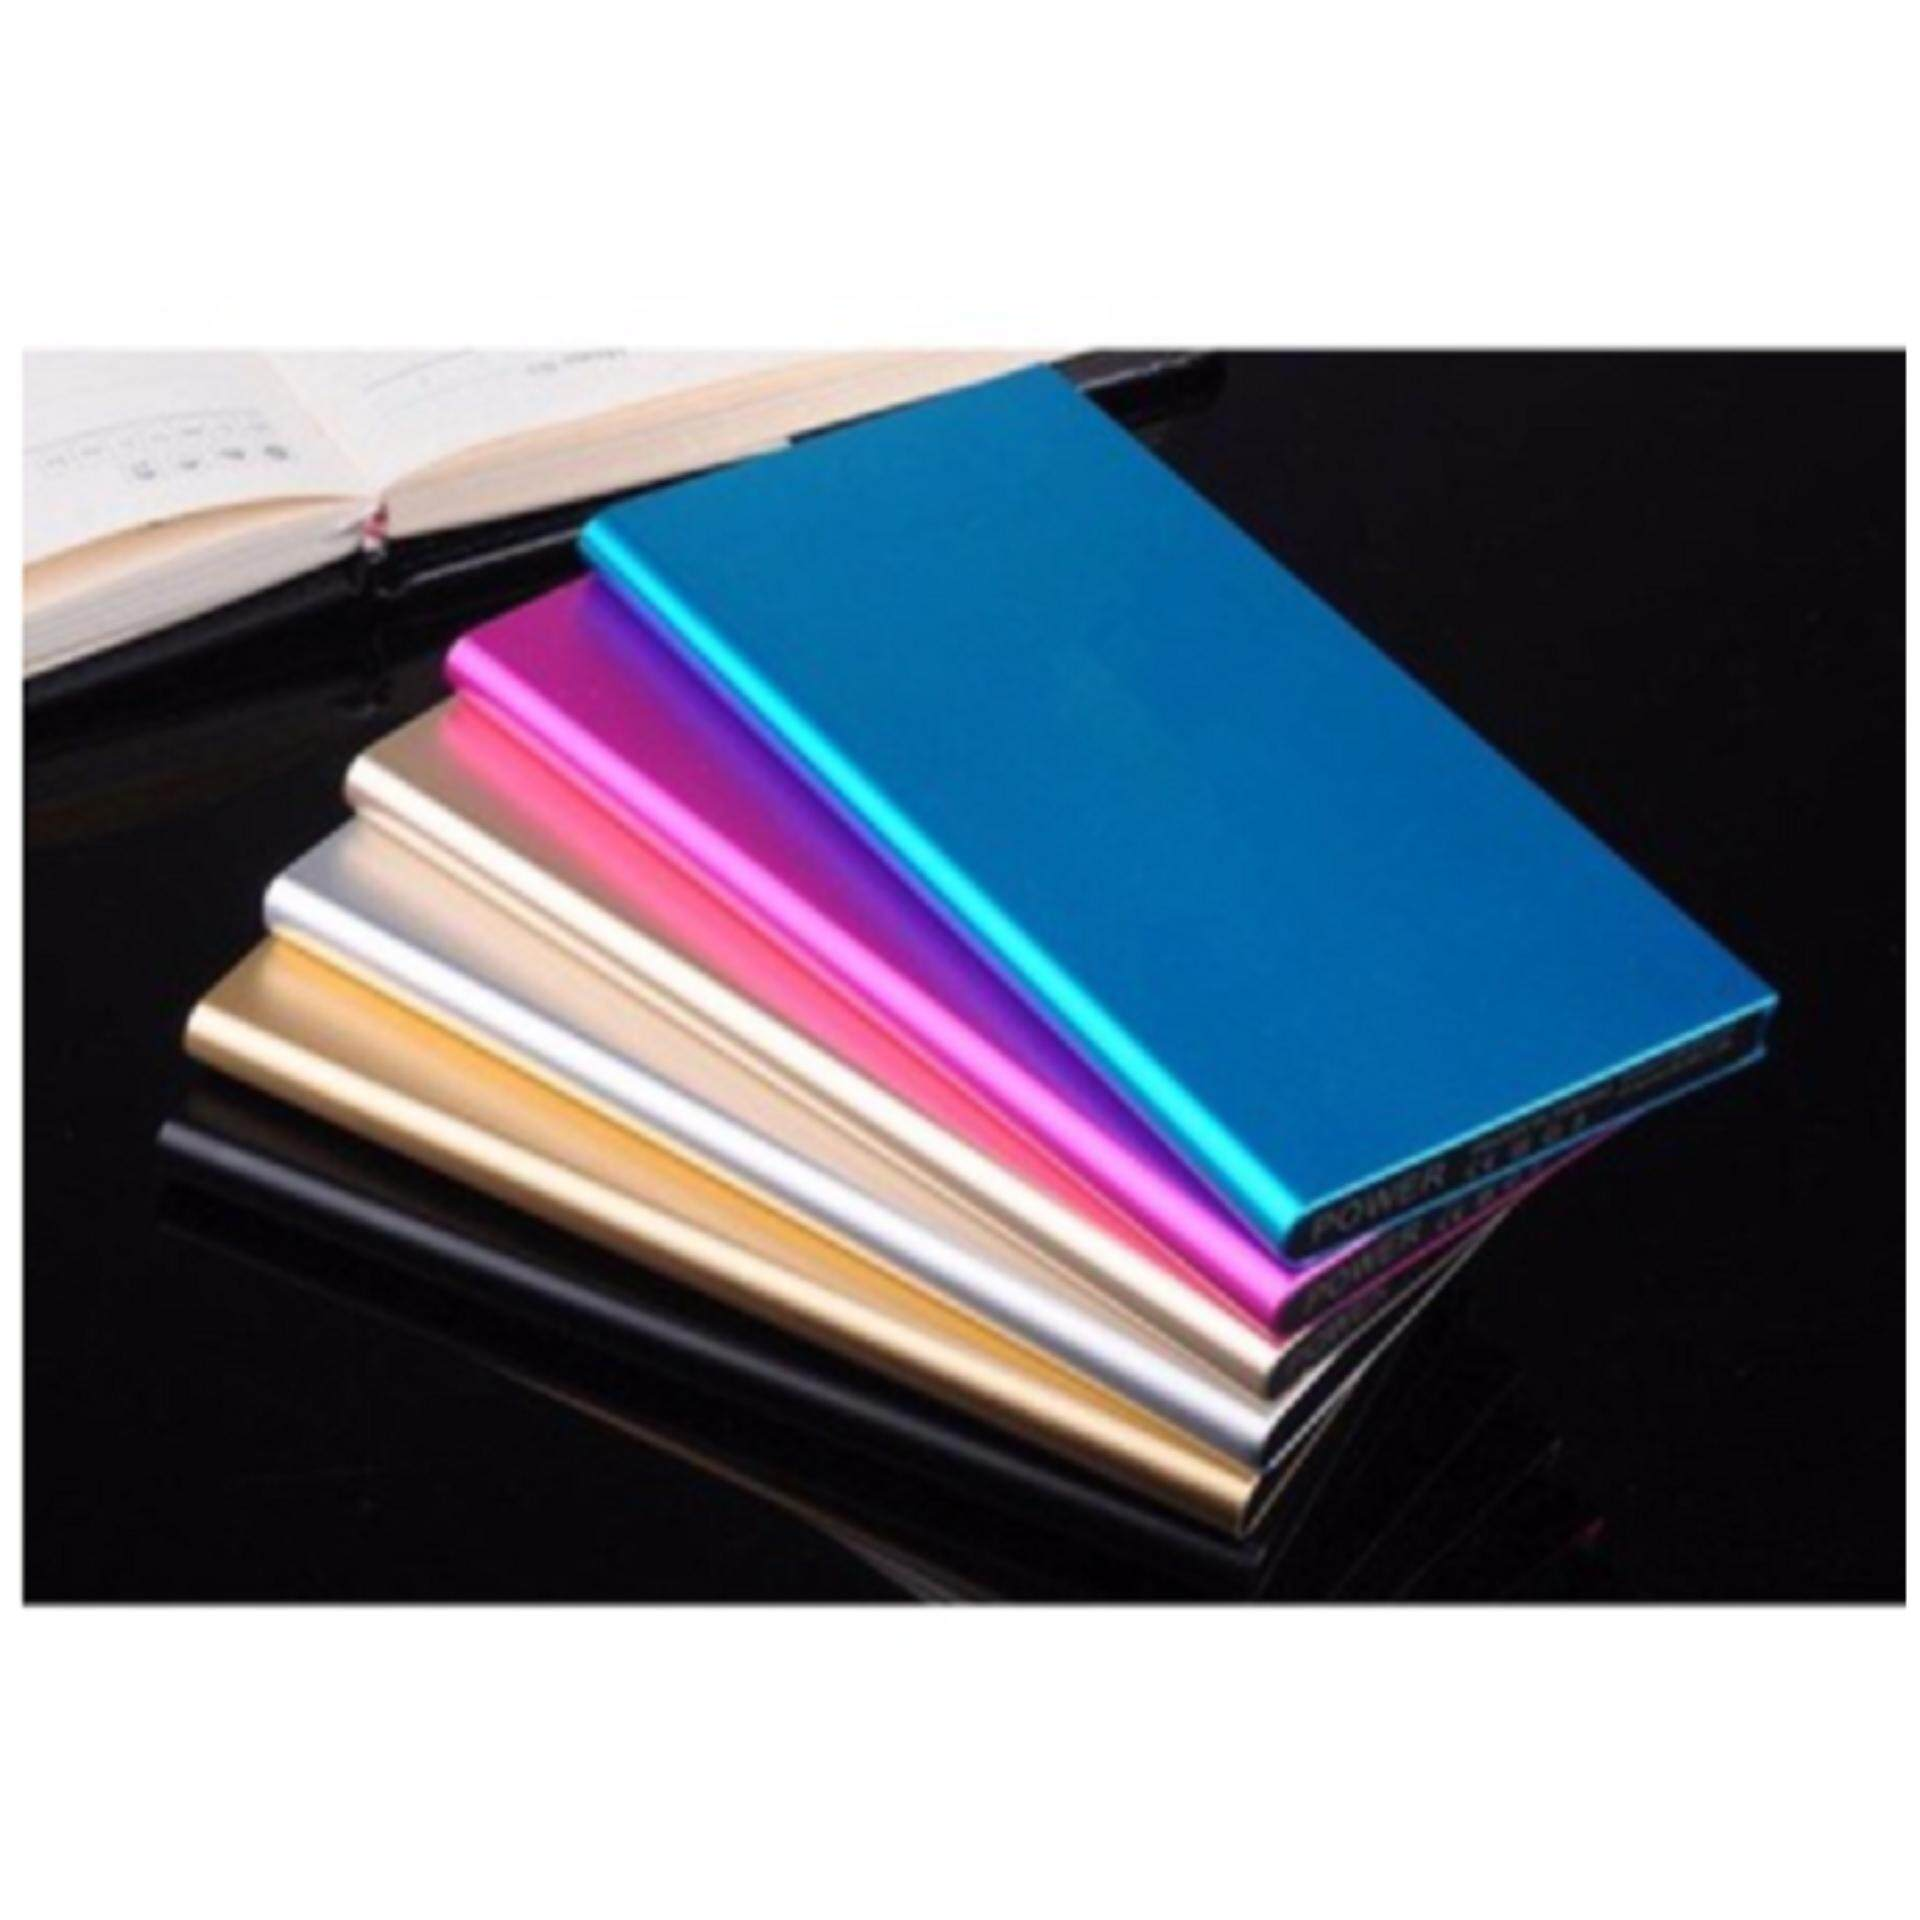 2x 50,000 mAh Super Thin Powerbank with Backlight- Silver - FREE SHIPPING - LOWEST IN TOWN